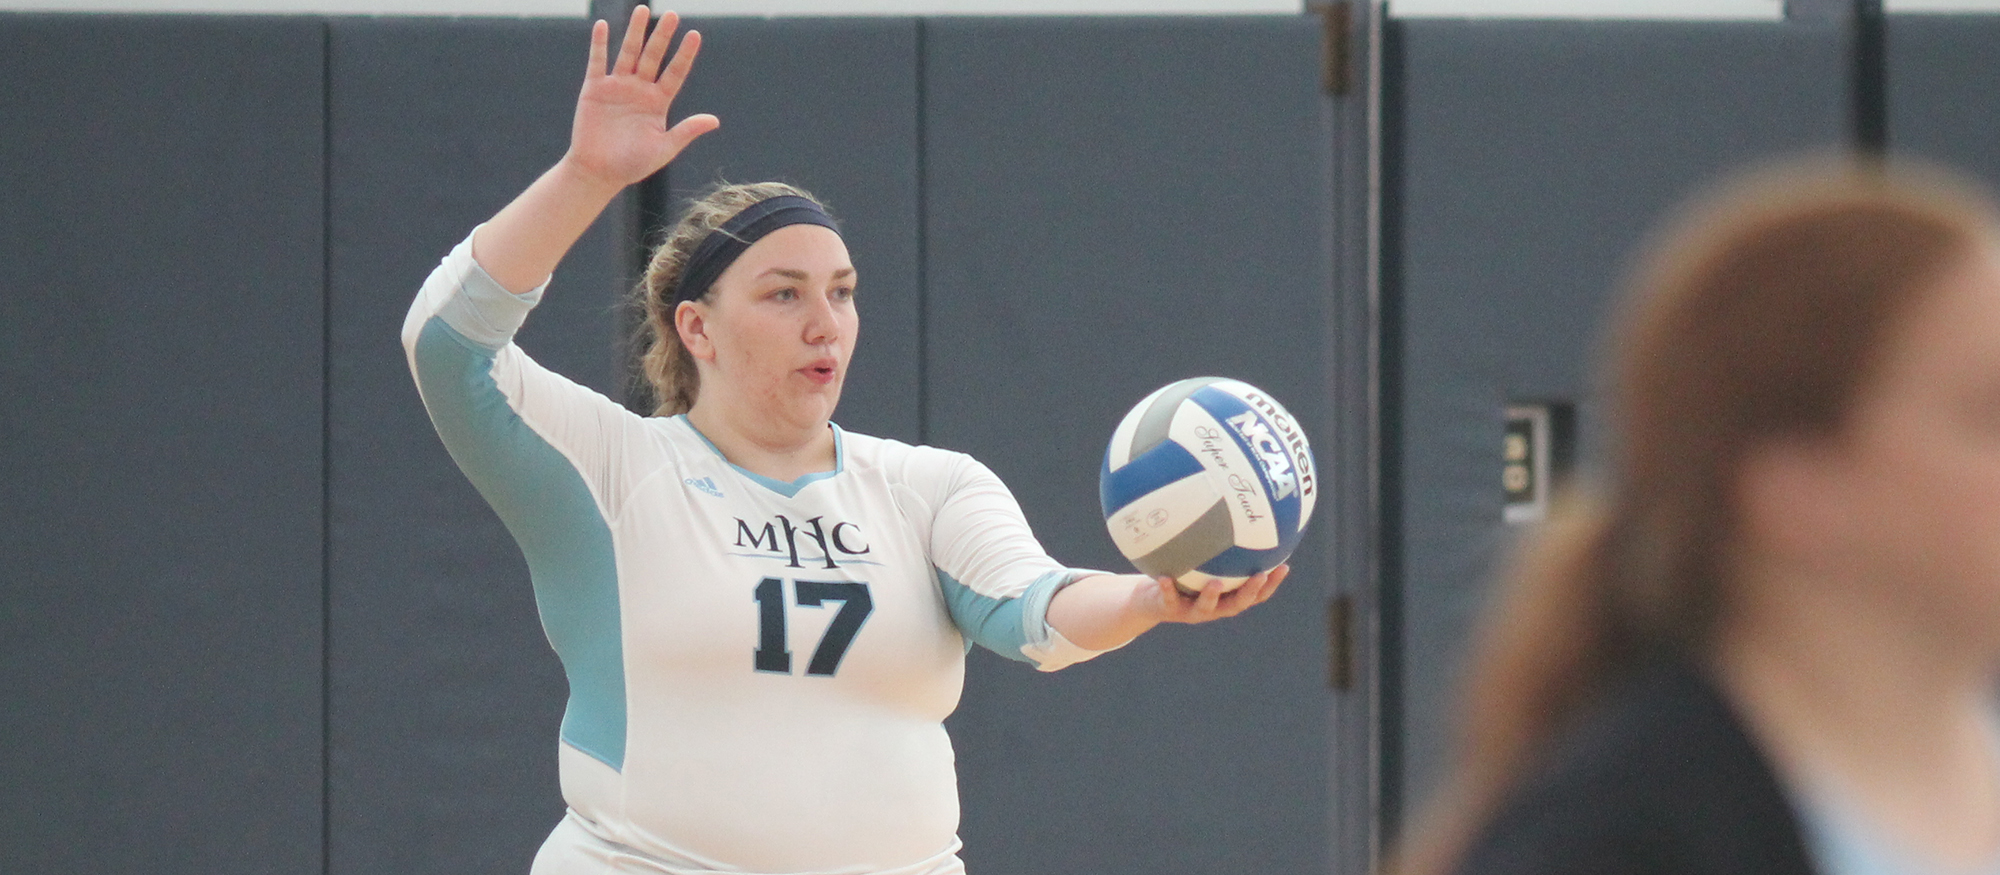 Westfield State Sweeps Volleyball, 3-0, in Non-Conference Play